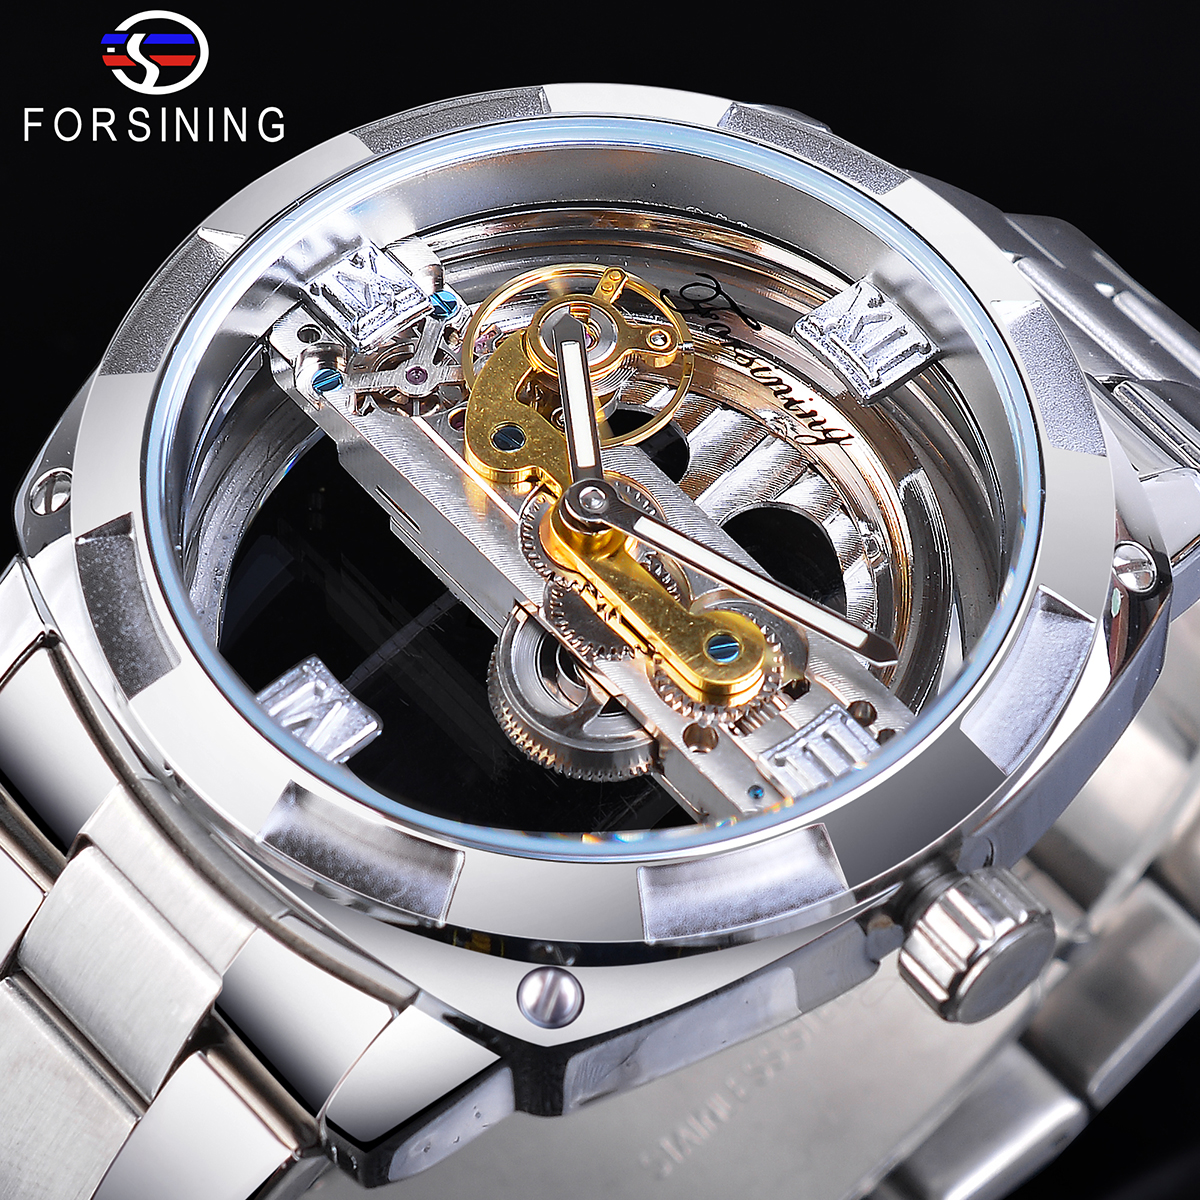 Forsining Silver Square Male Transparent Mechanical Watches Automatic Golden Gear Skeleton Stainless Steel Band Man Reloj Hombre